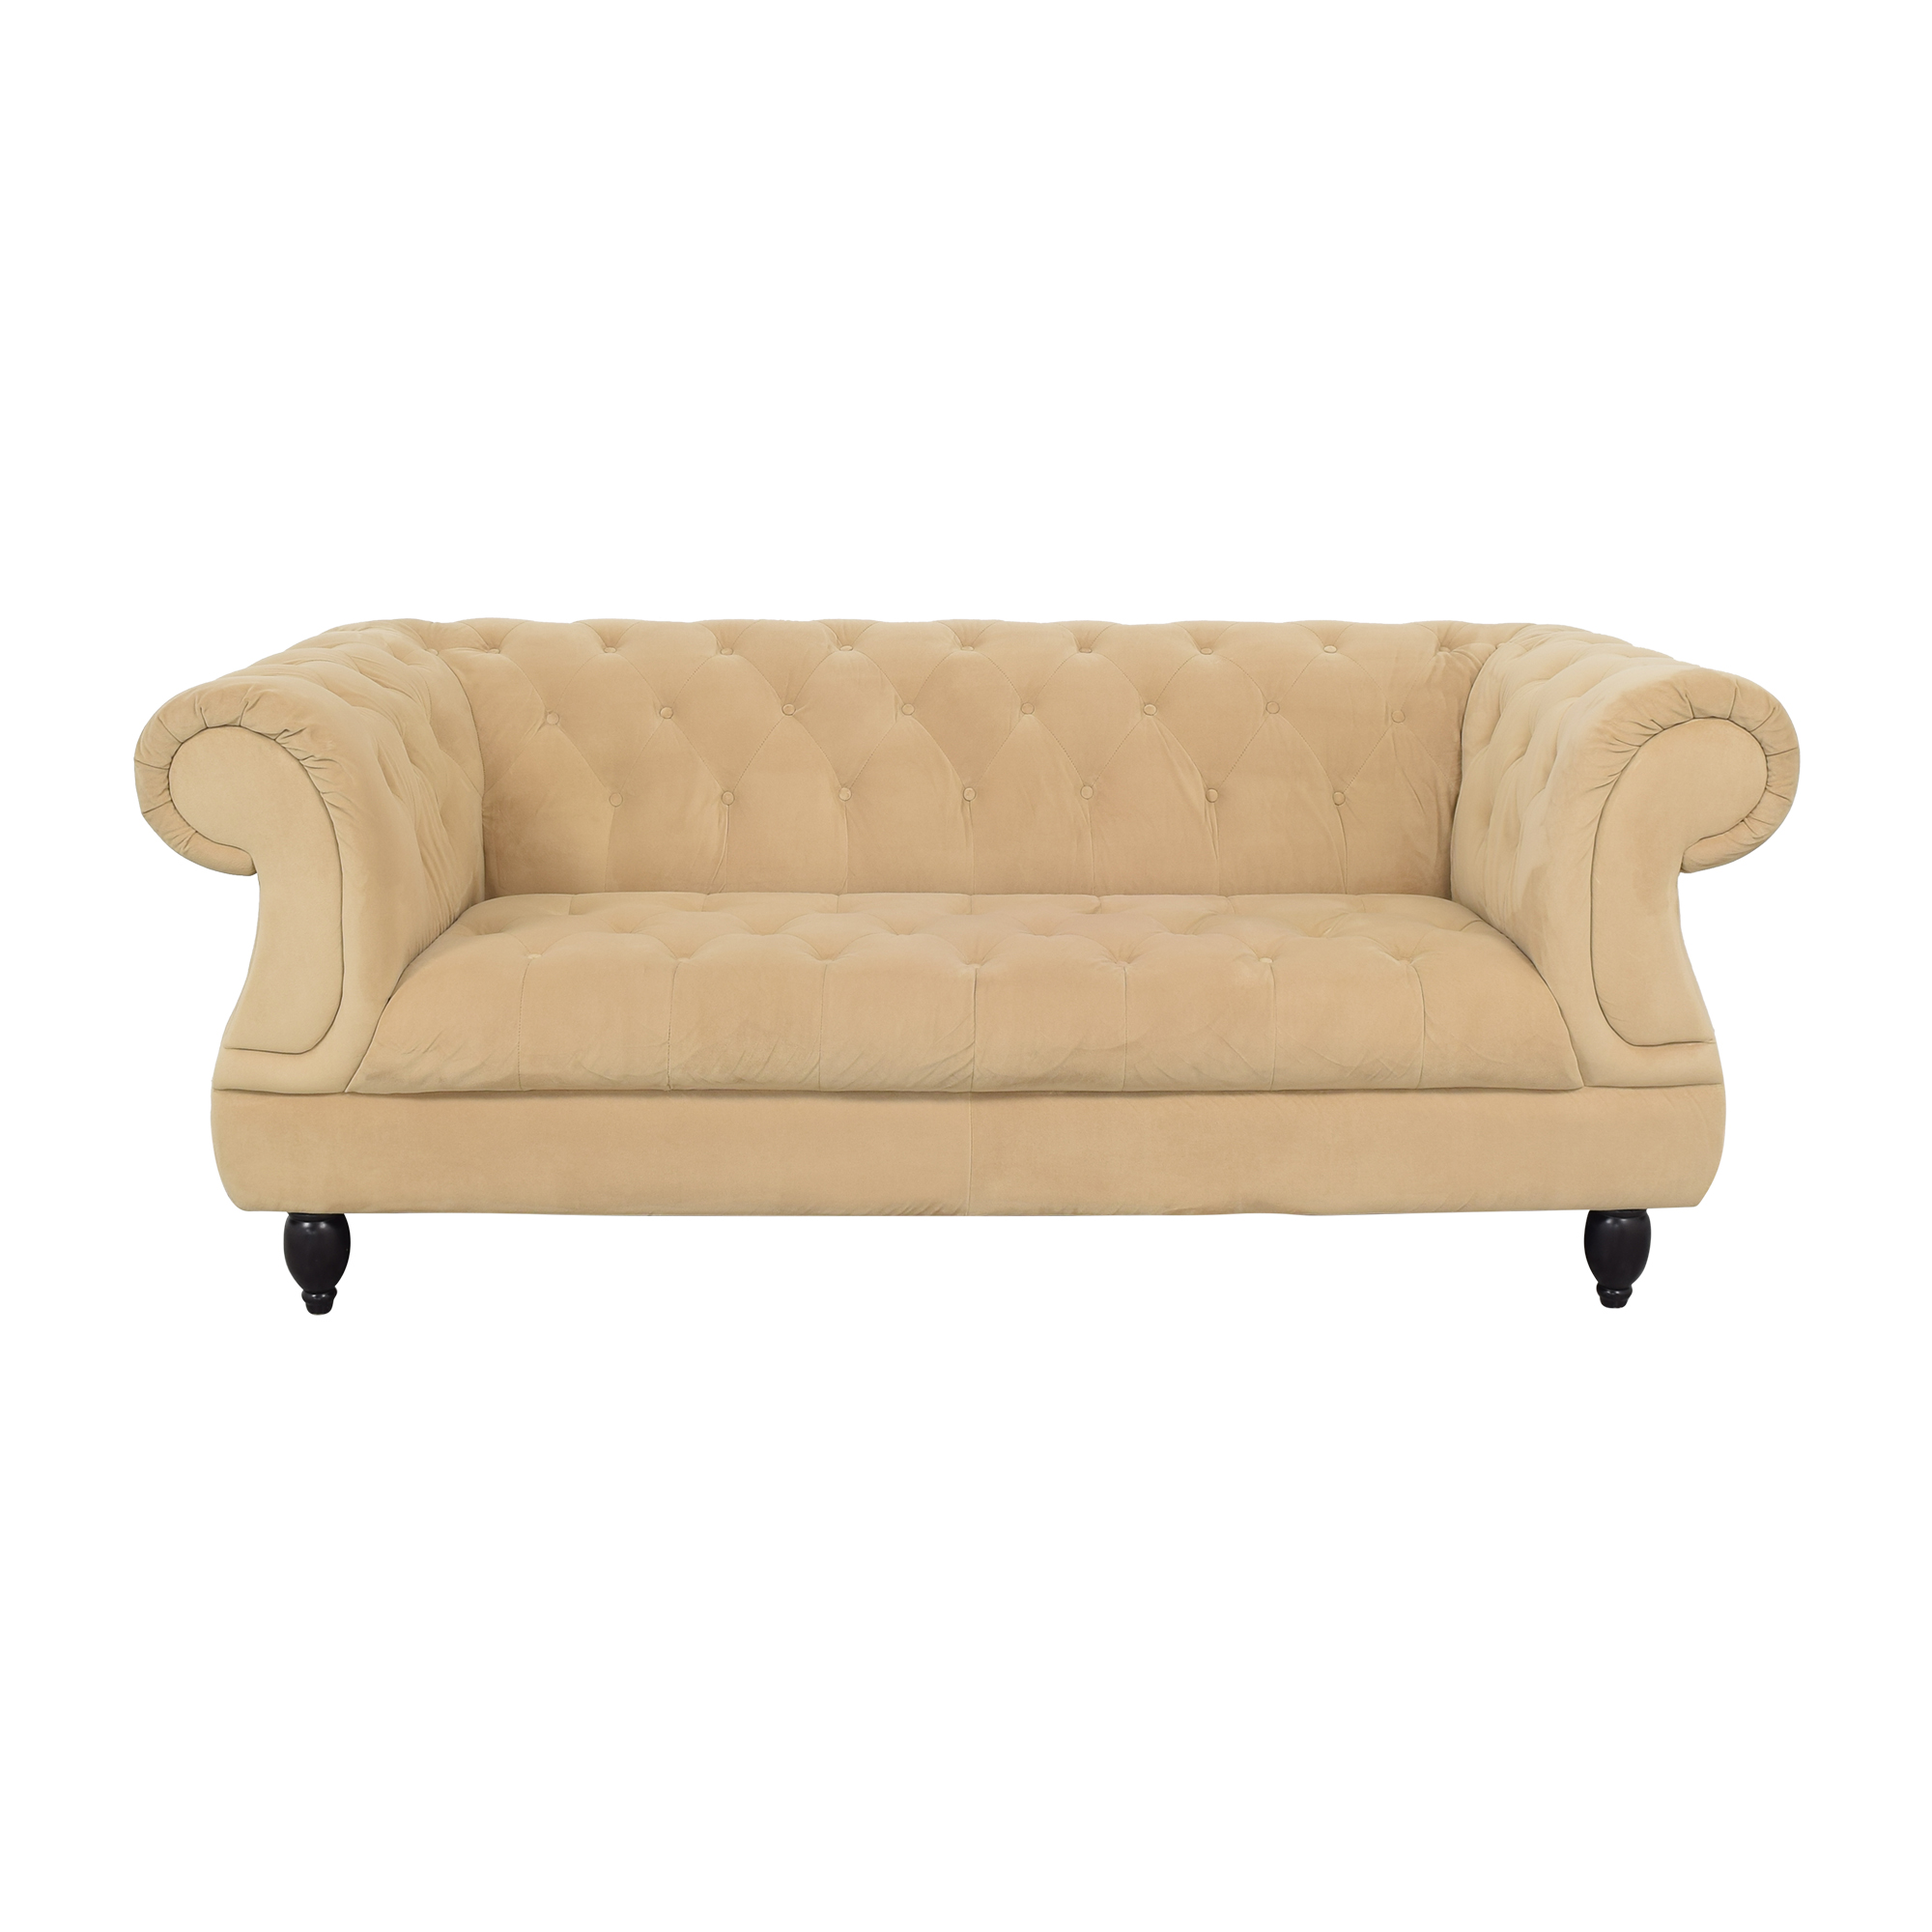 Raymour & Flanigan Raymour & Flanigan Rolled Arm Tufted Nailhead Sofa coupon